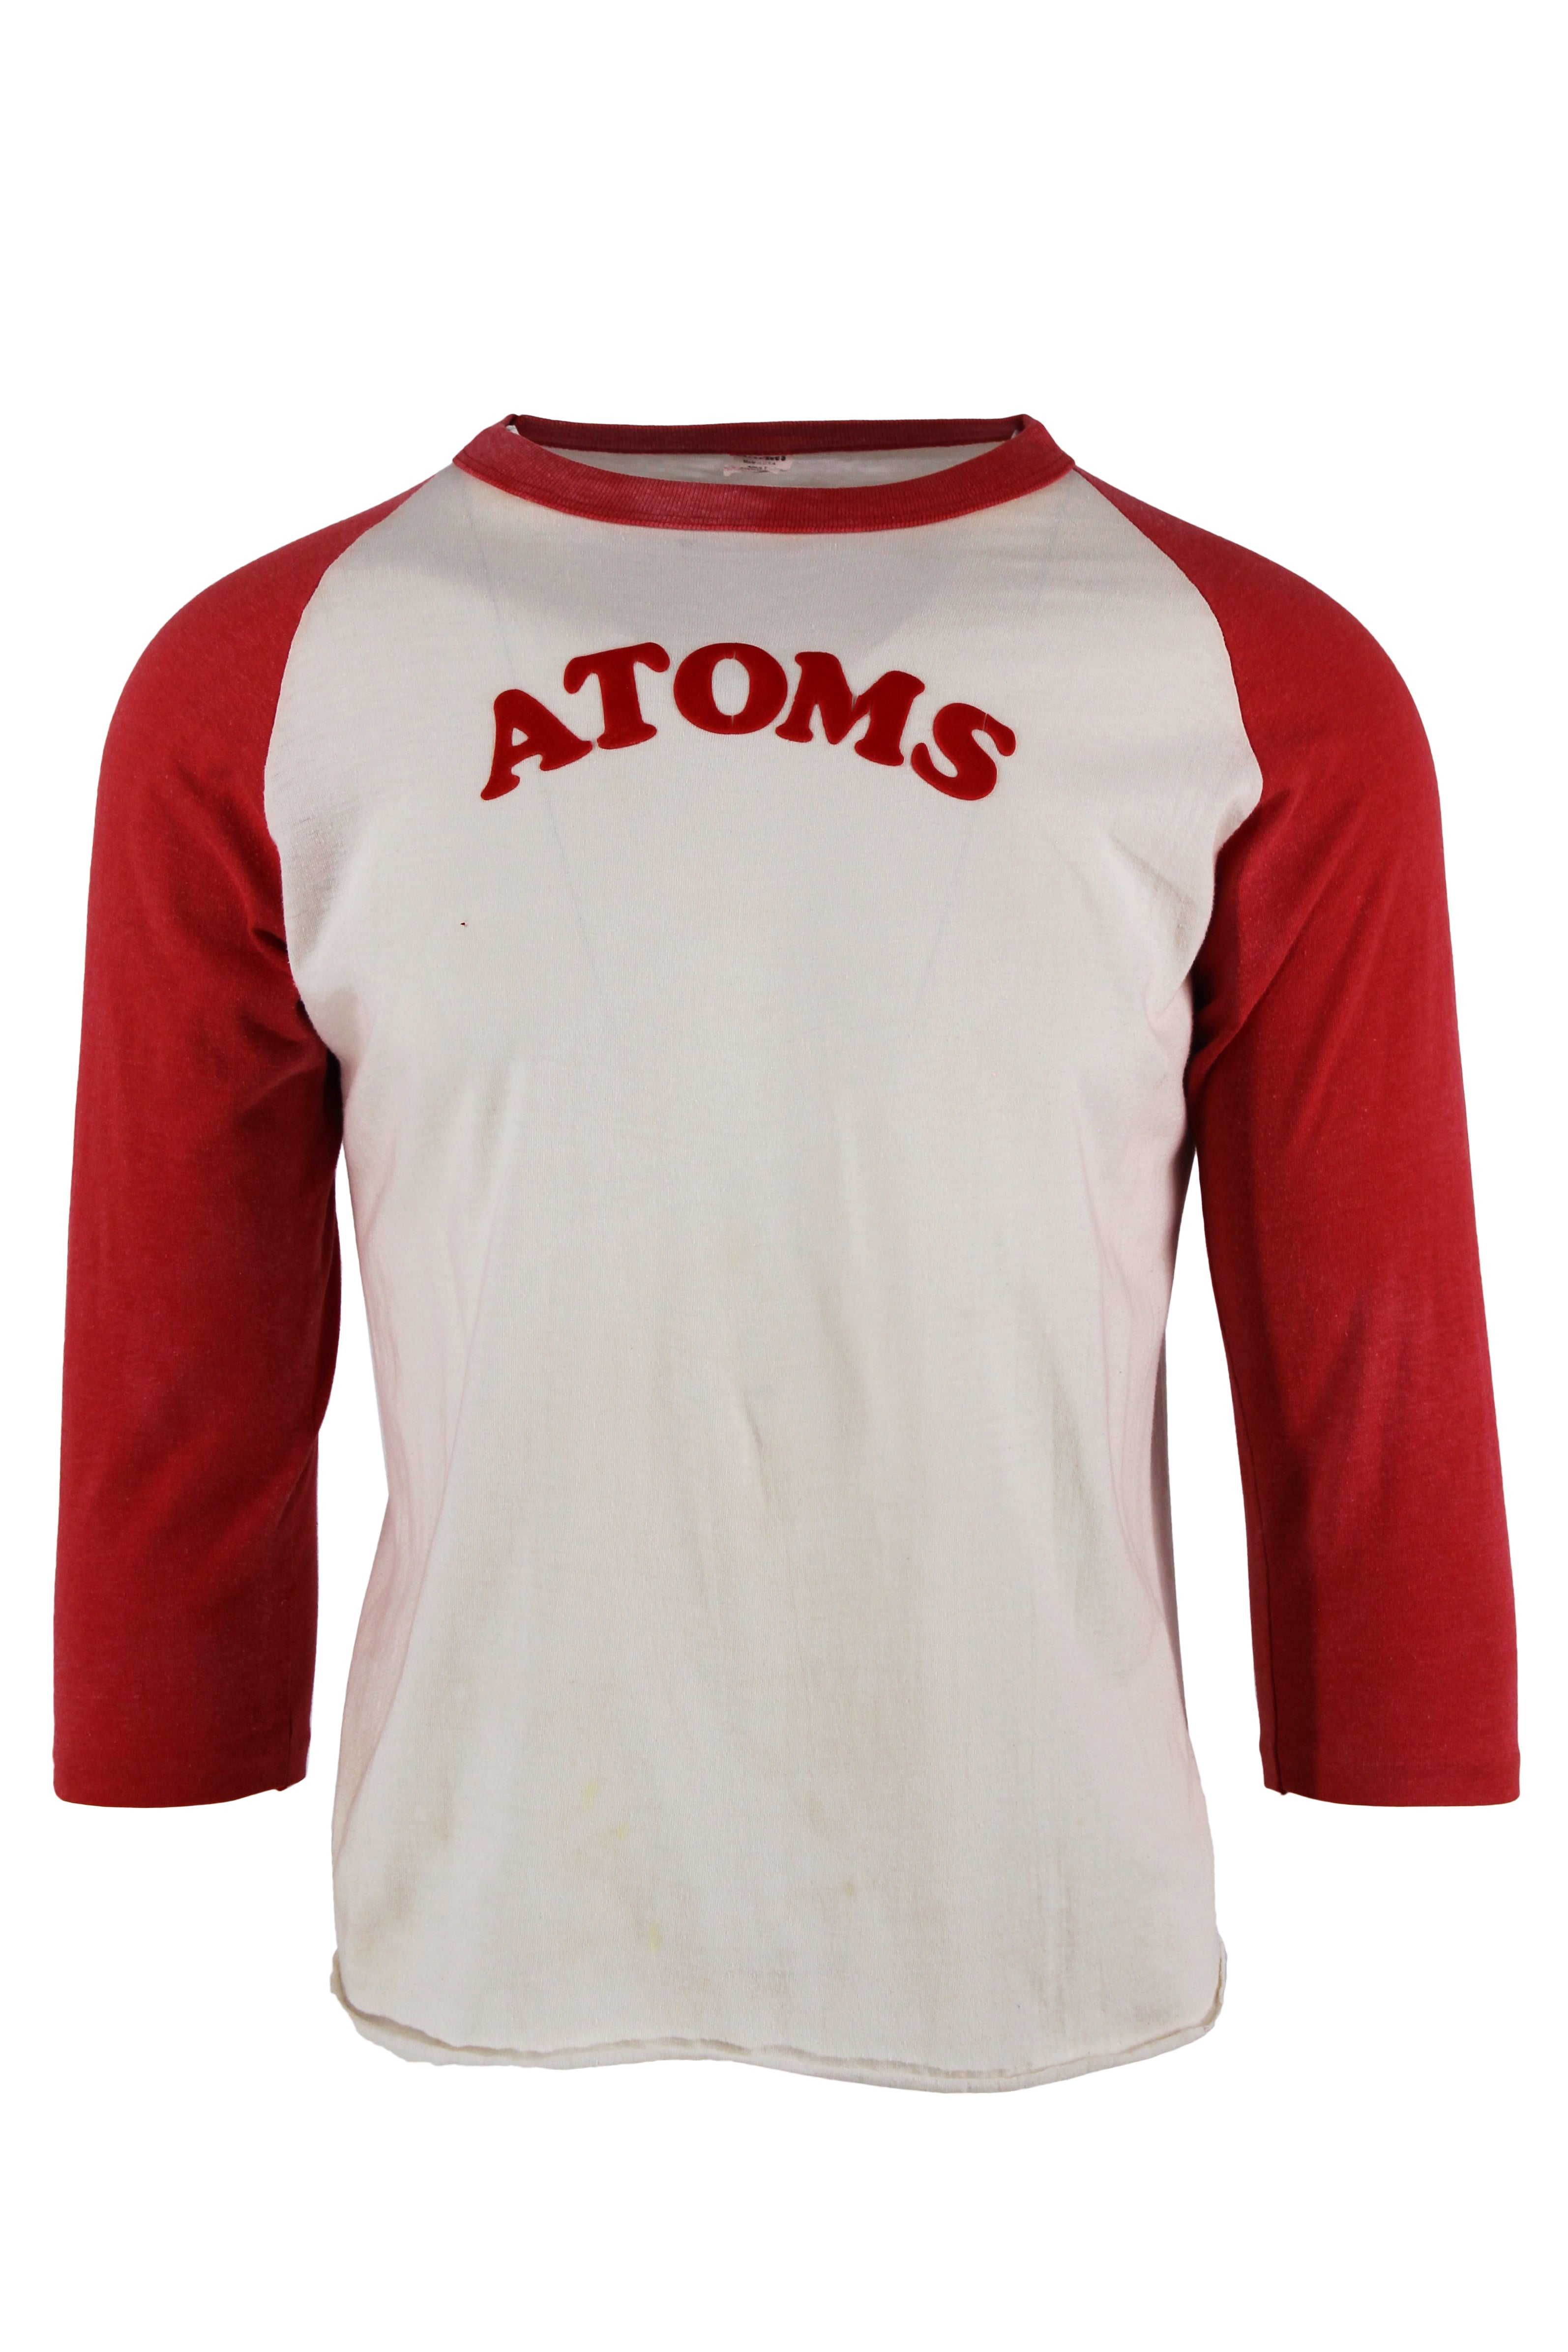 vintage white and red baseball t-shirt. features atoms lettering in red velvet at the chest.